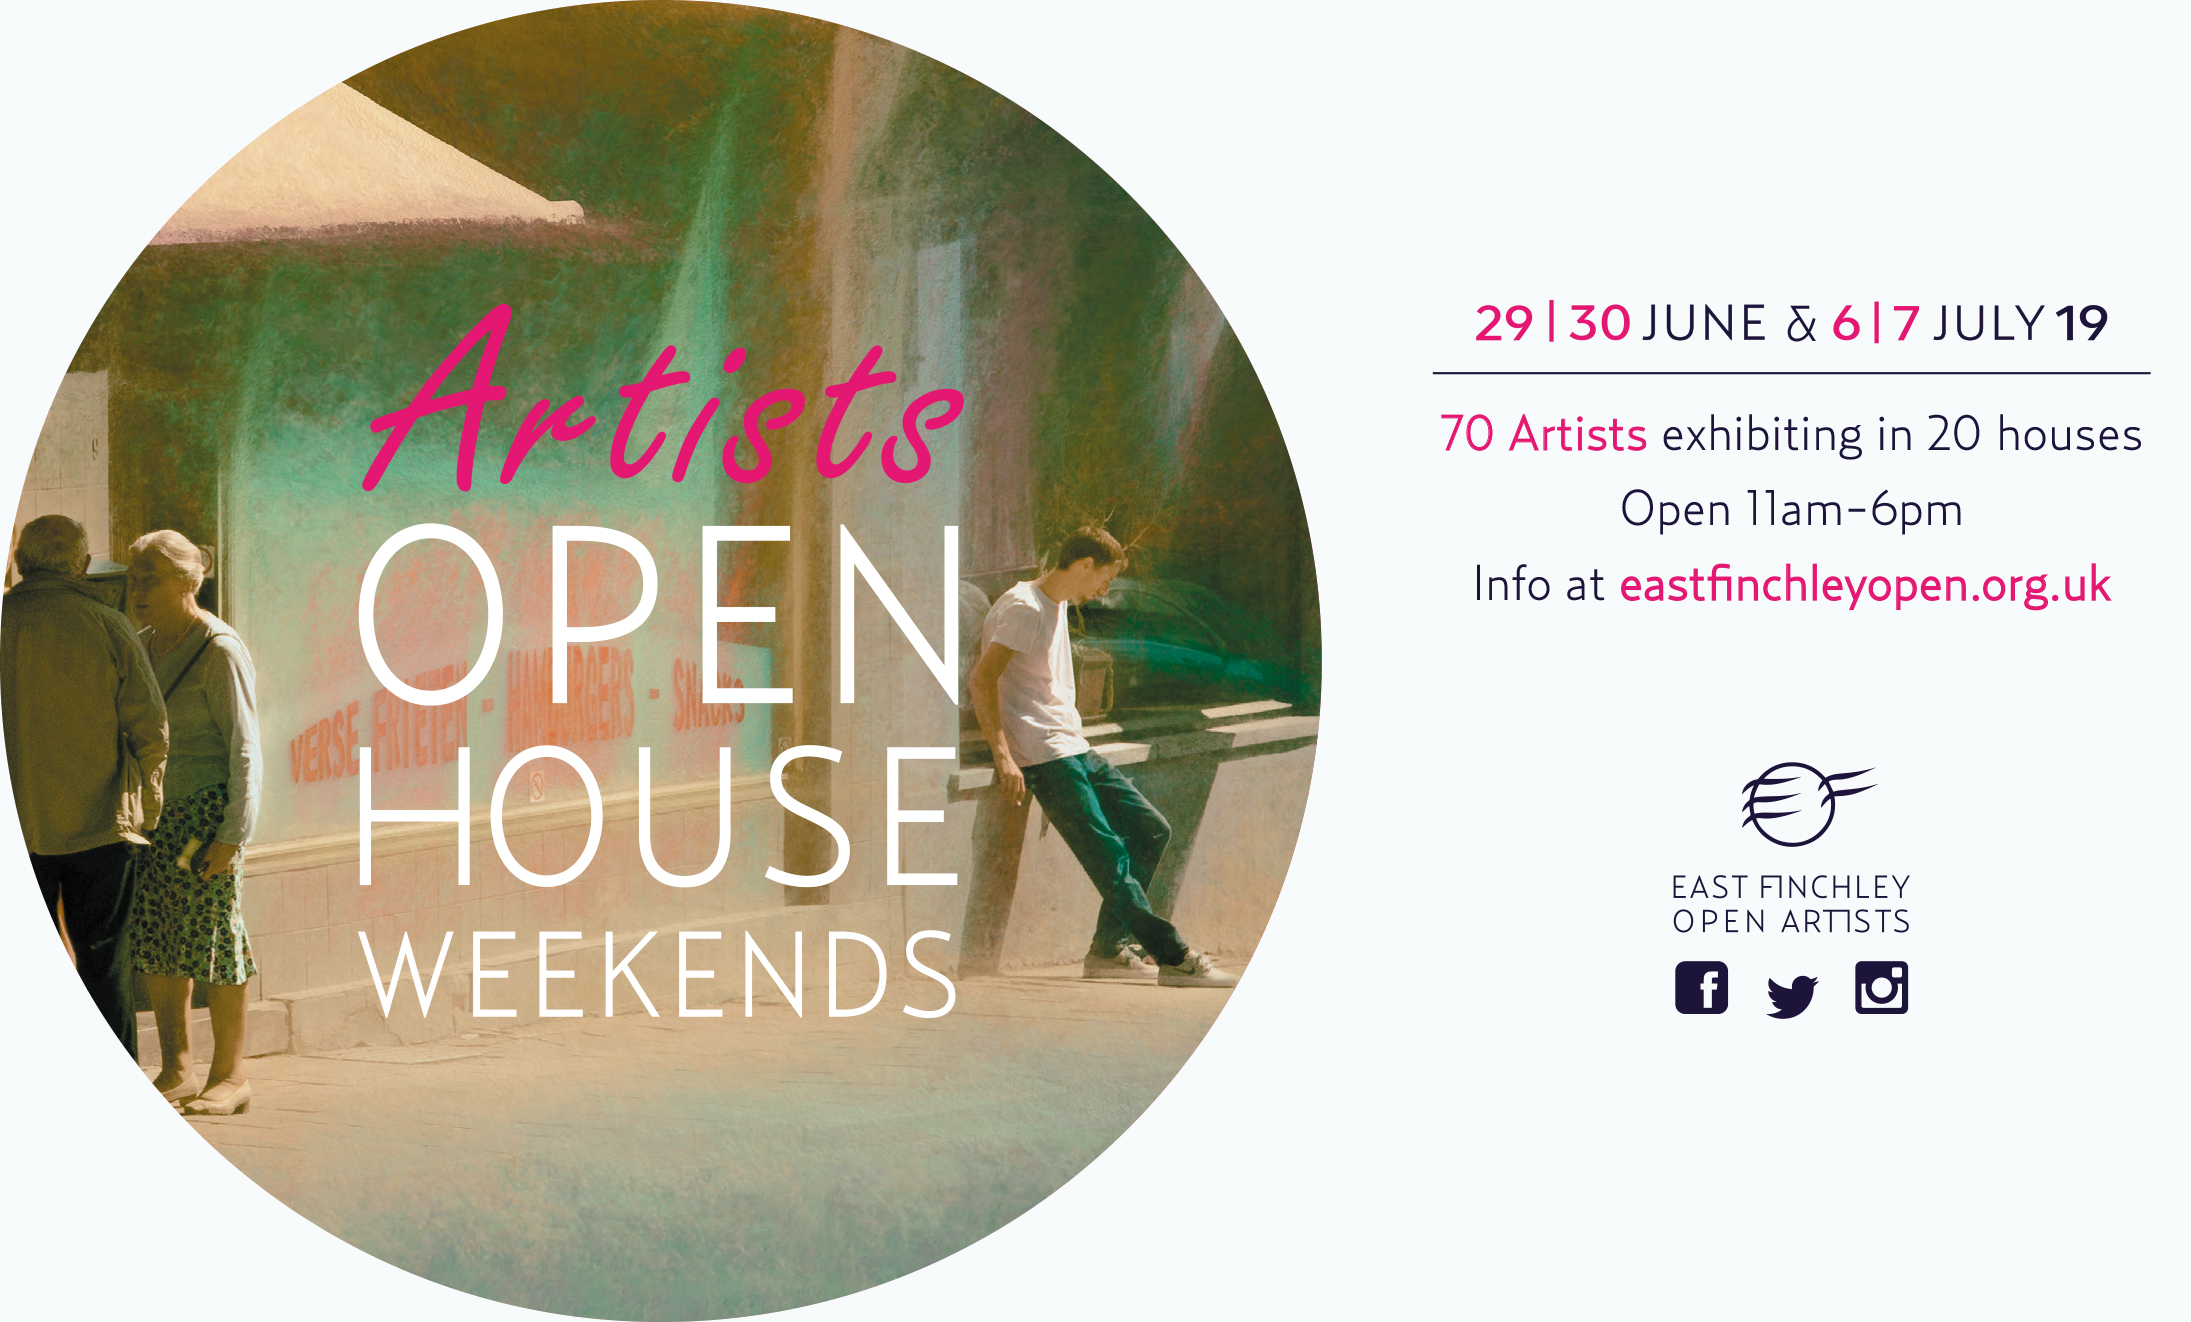 East Finchley Open Artists Open House exhibitions